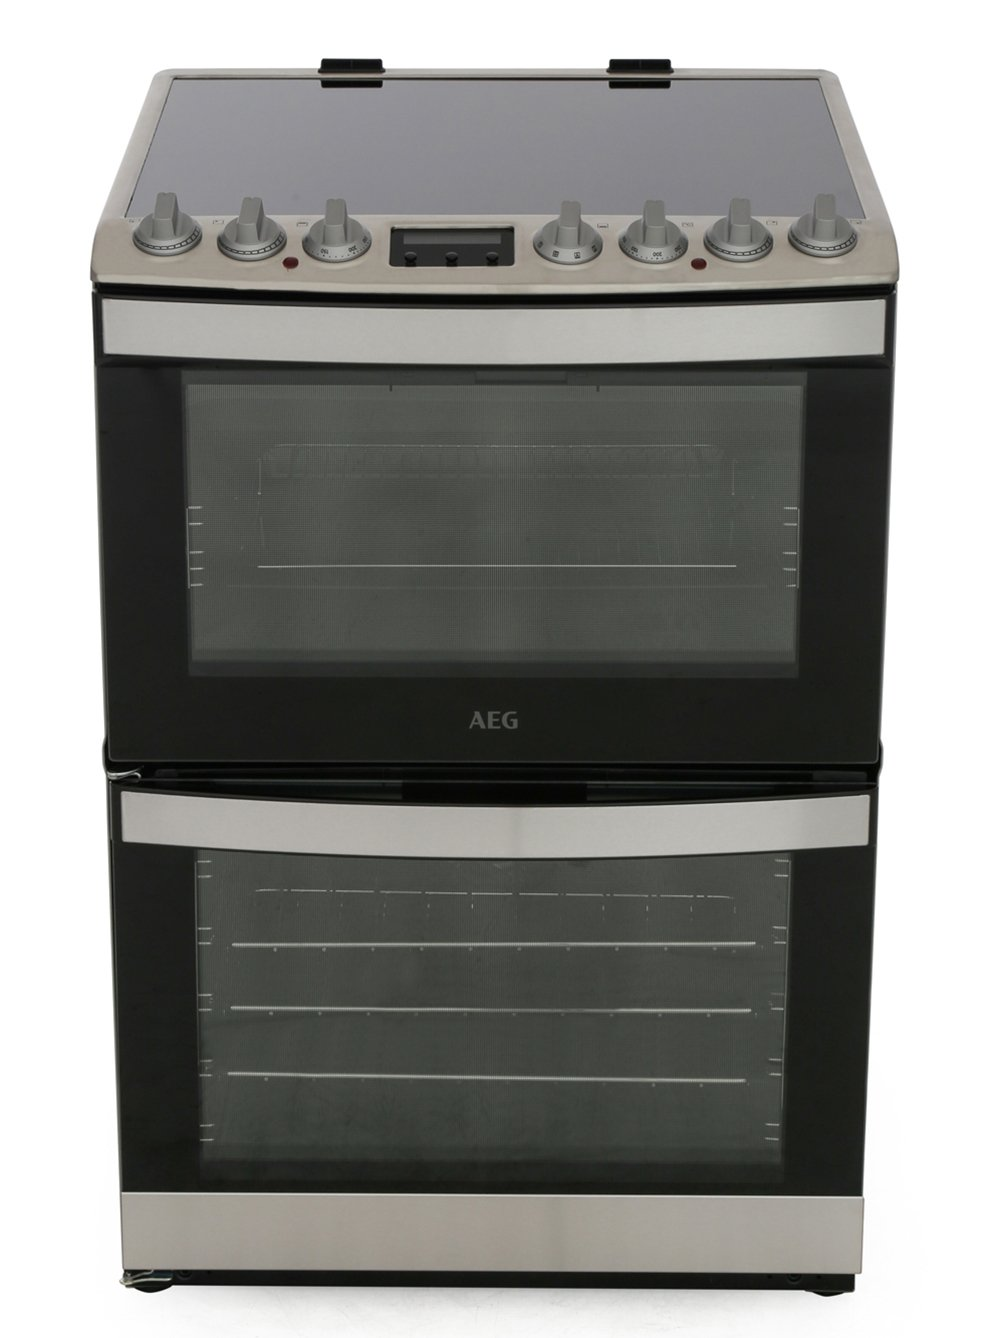 AEG CIB6731ACM SteamBake Induction Electric Cooker with Double Oven